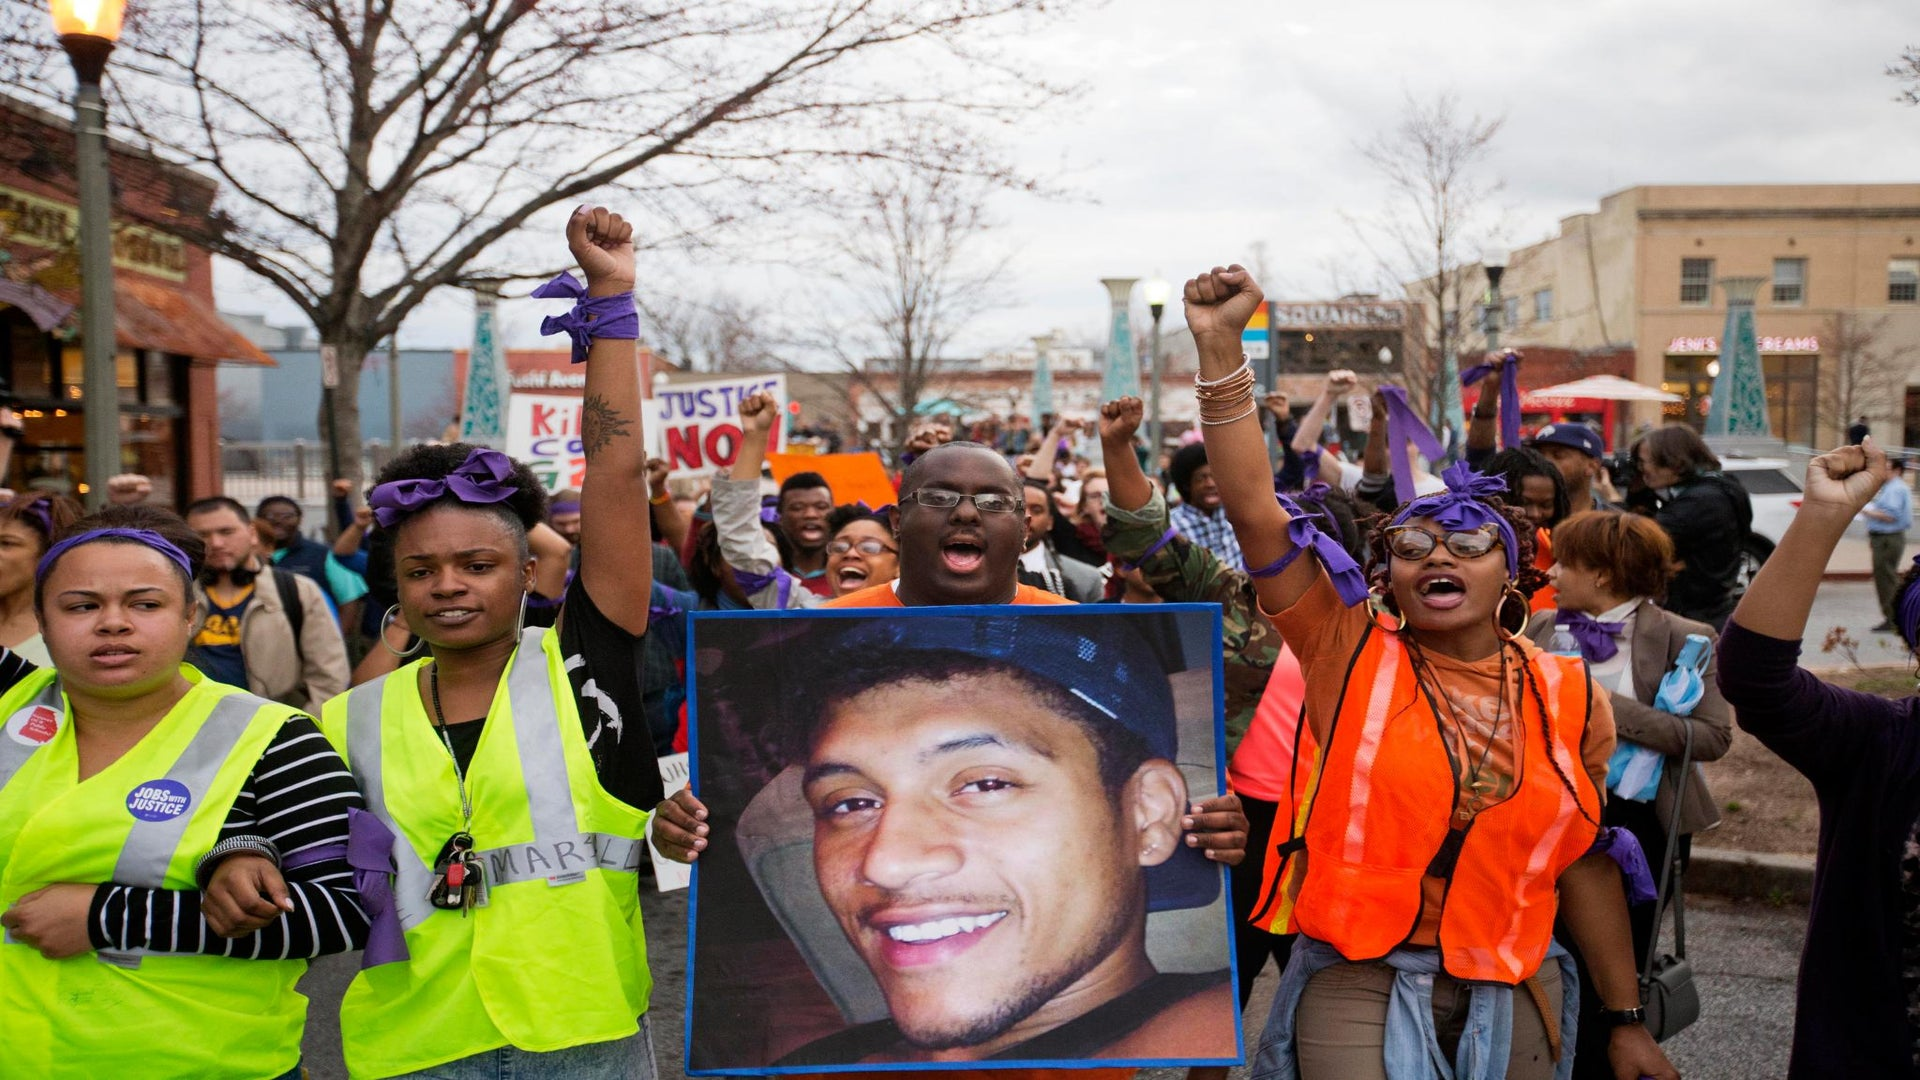 Hundreds Gather to Protest the Shooting Death of Unarmed Georgia Man Anthony Hill